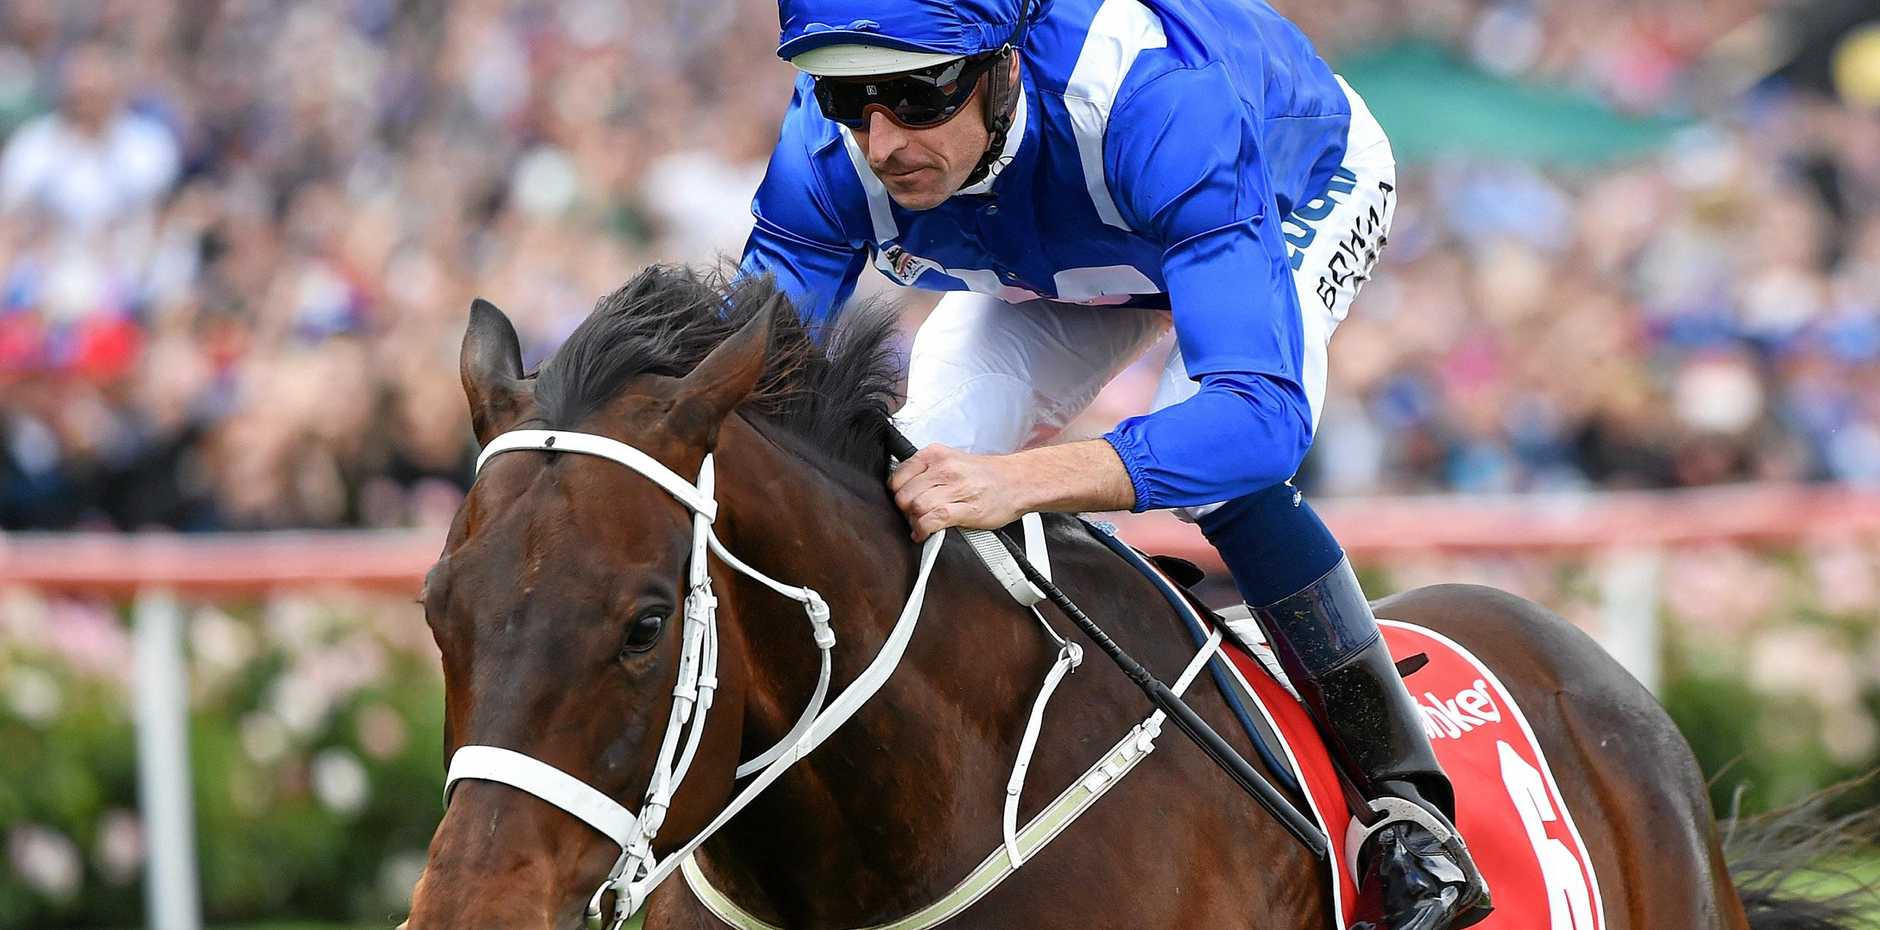 Hugh Bowman and Winx win their 4th cox plate at Moonee Valley, trained by Chris Waller. Moonee Valley Cox Plate race day races.